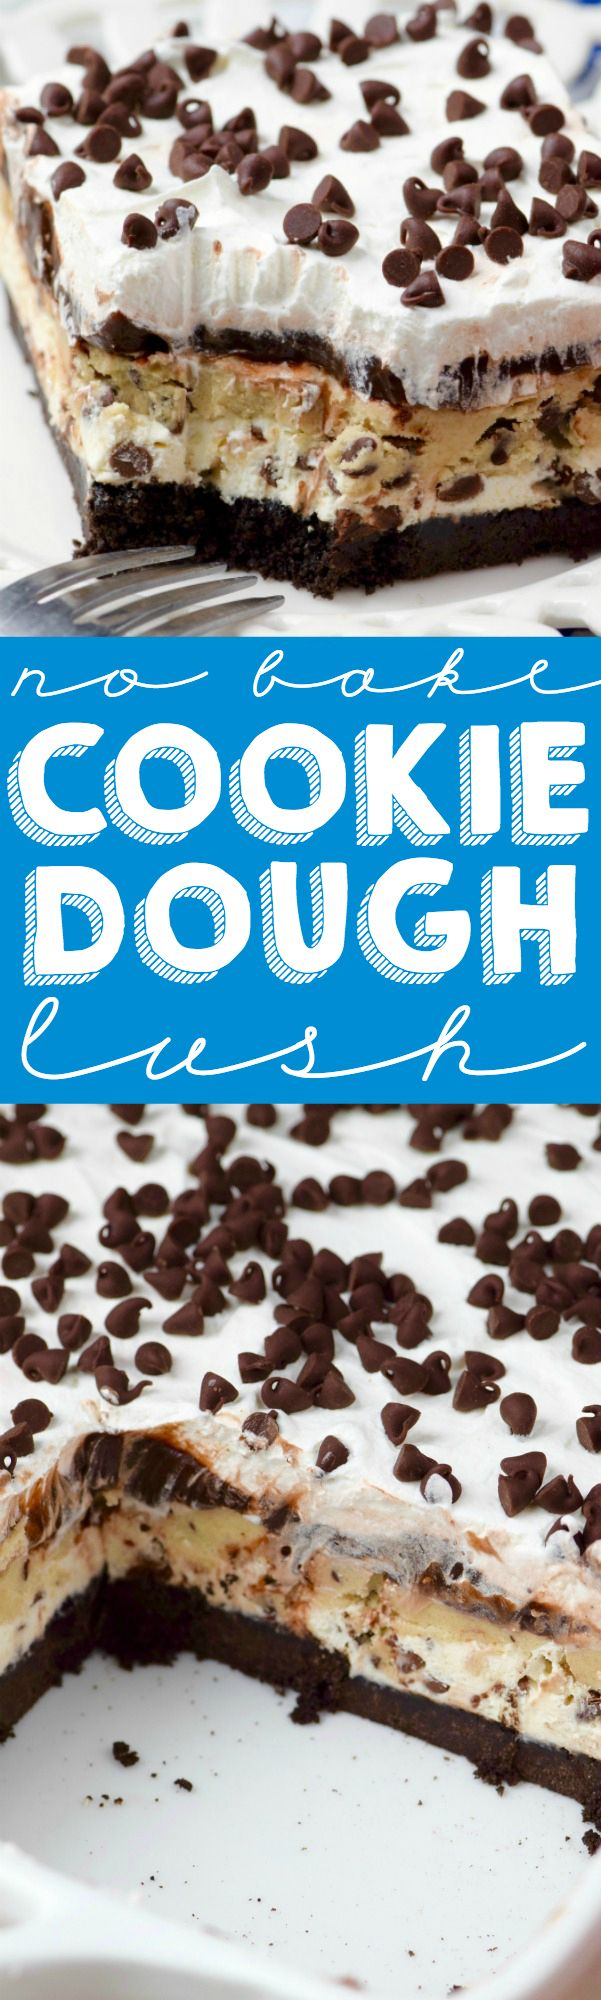 Cookie Dough Lush